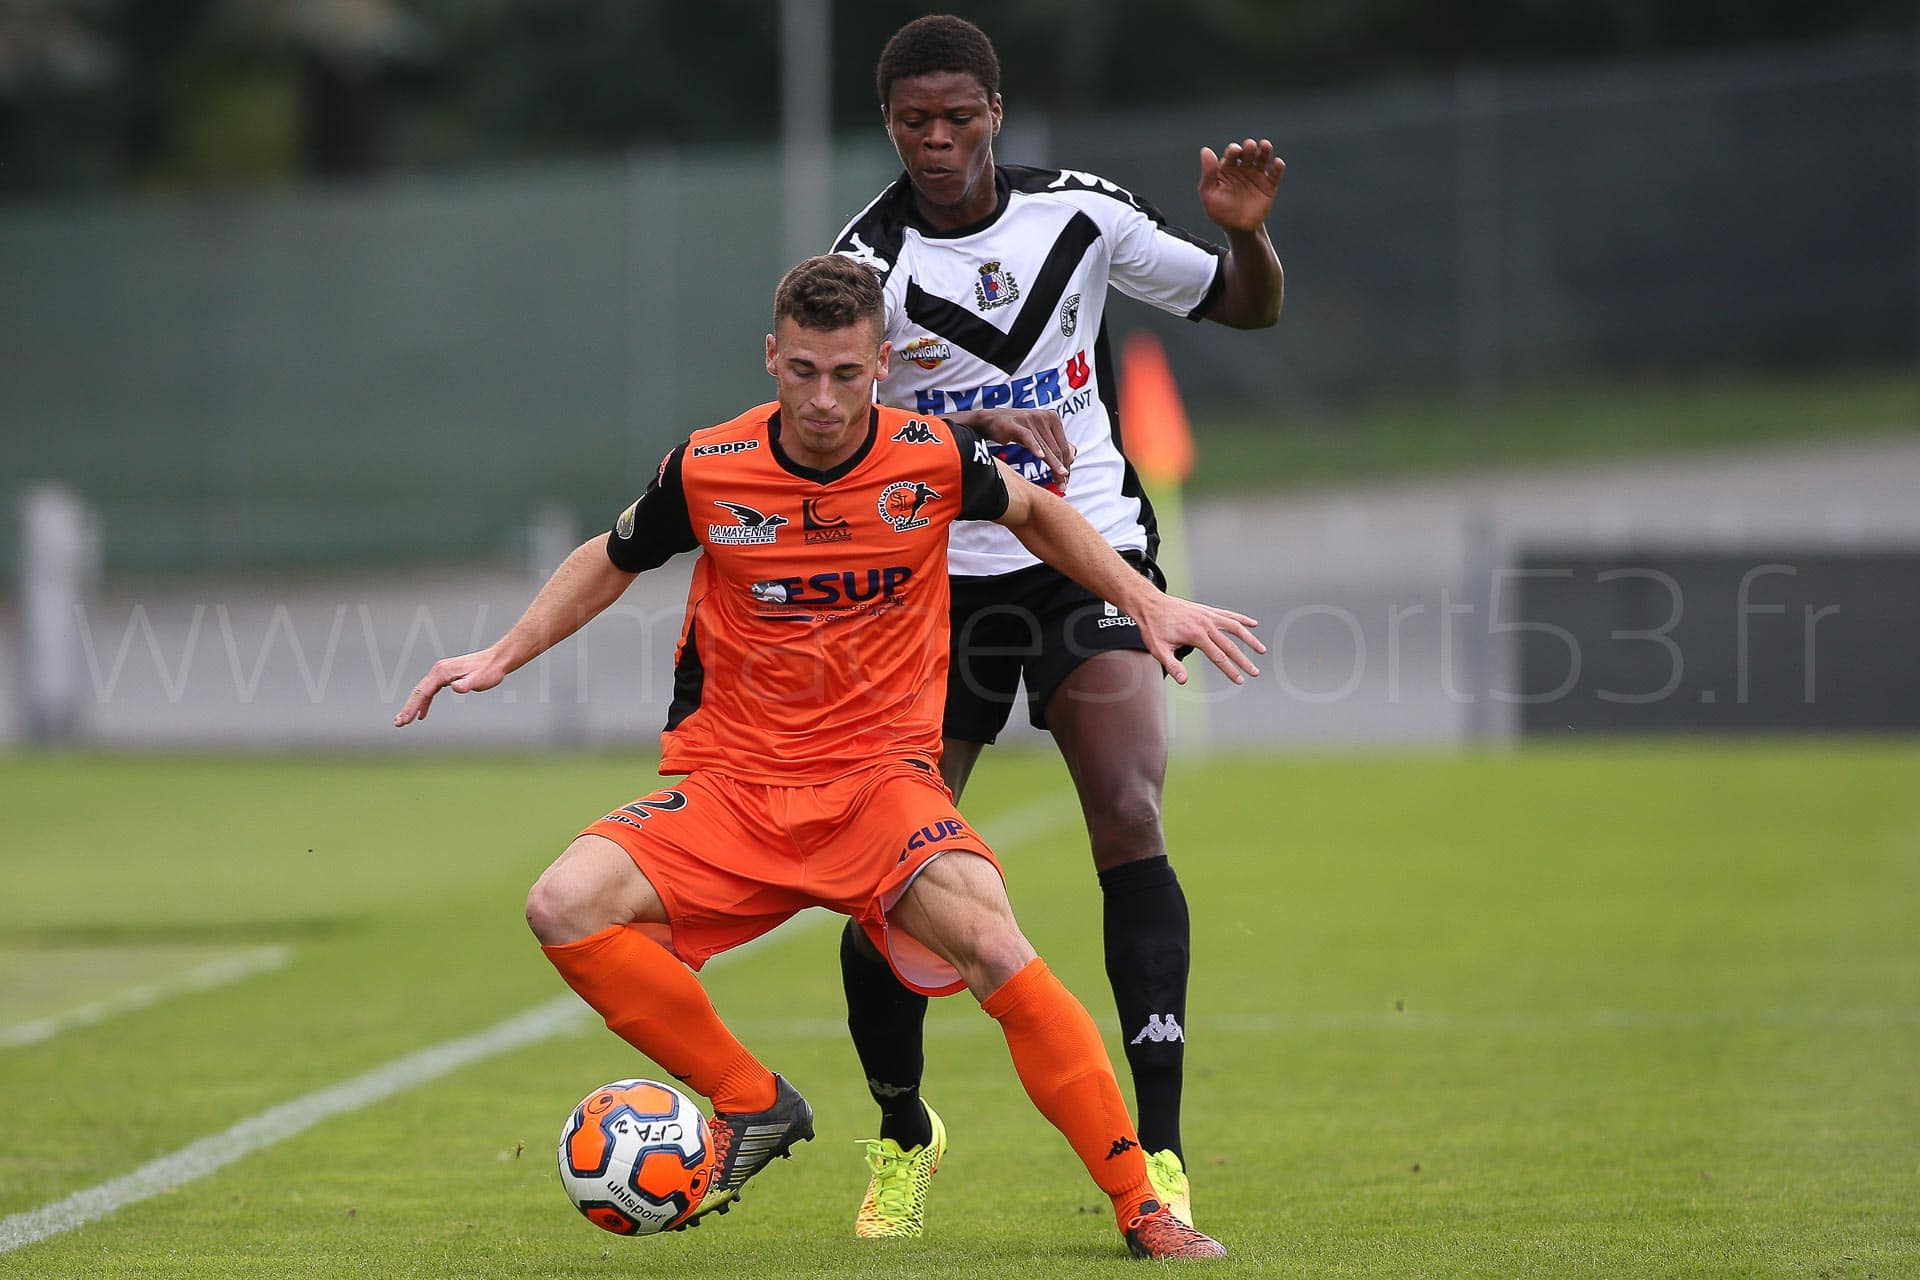 NG-CFA2-1415-J03-Laval-Chateaubriant_1